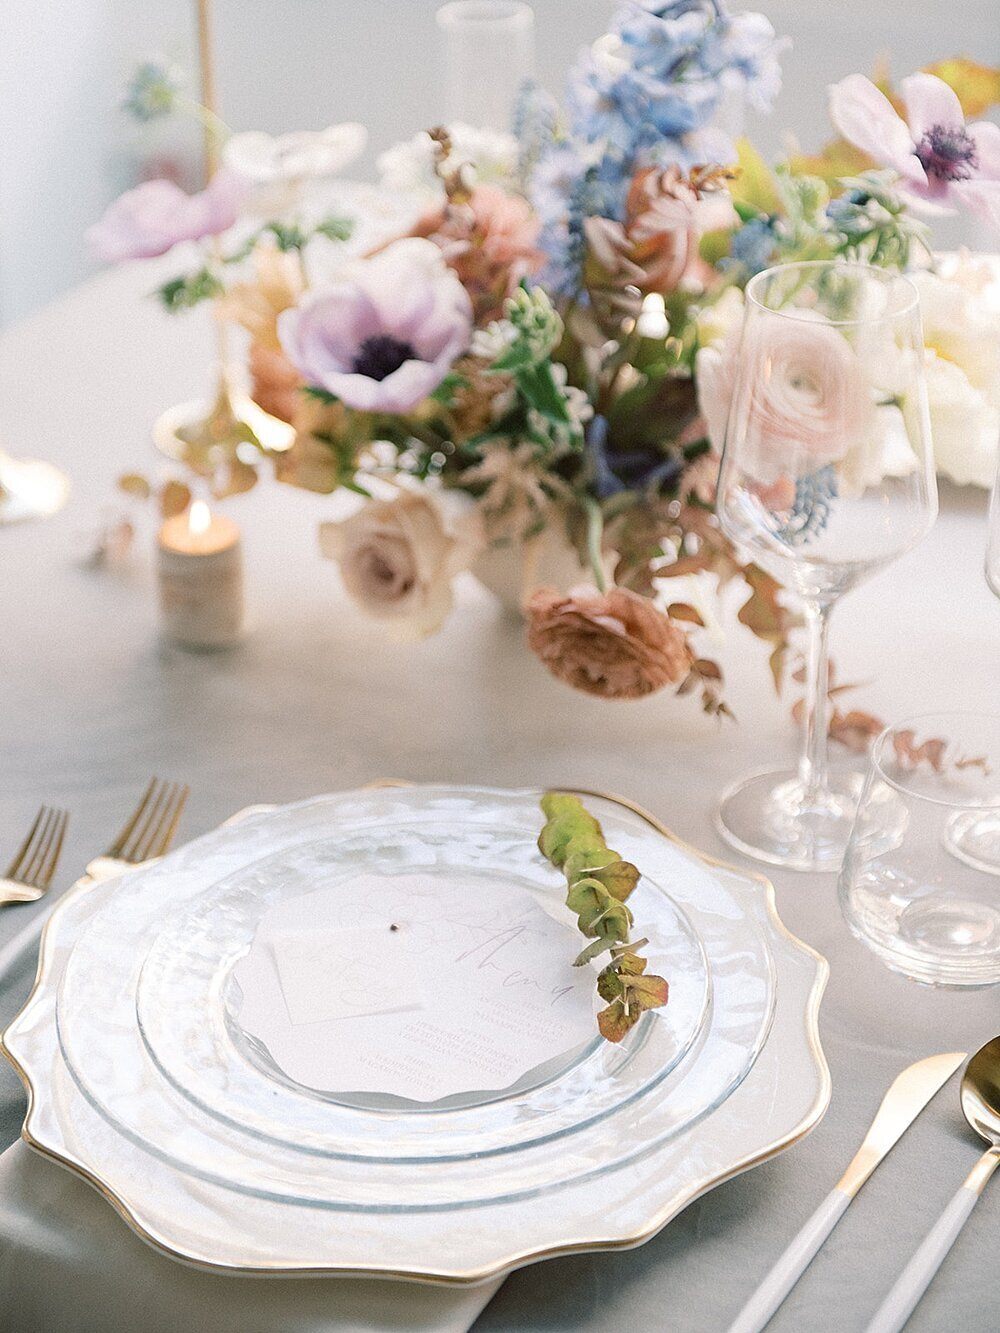 Modern-love-event-leigh-and-mitchell-gold-and-white-modern-flatware